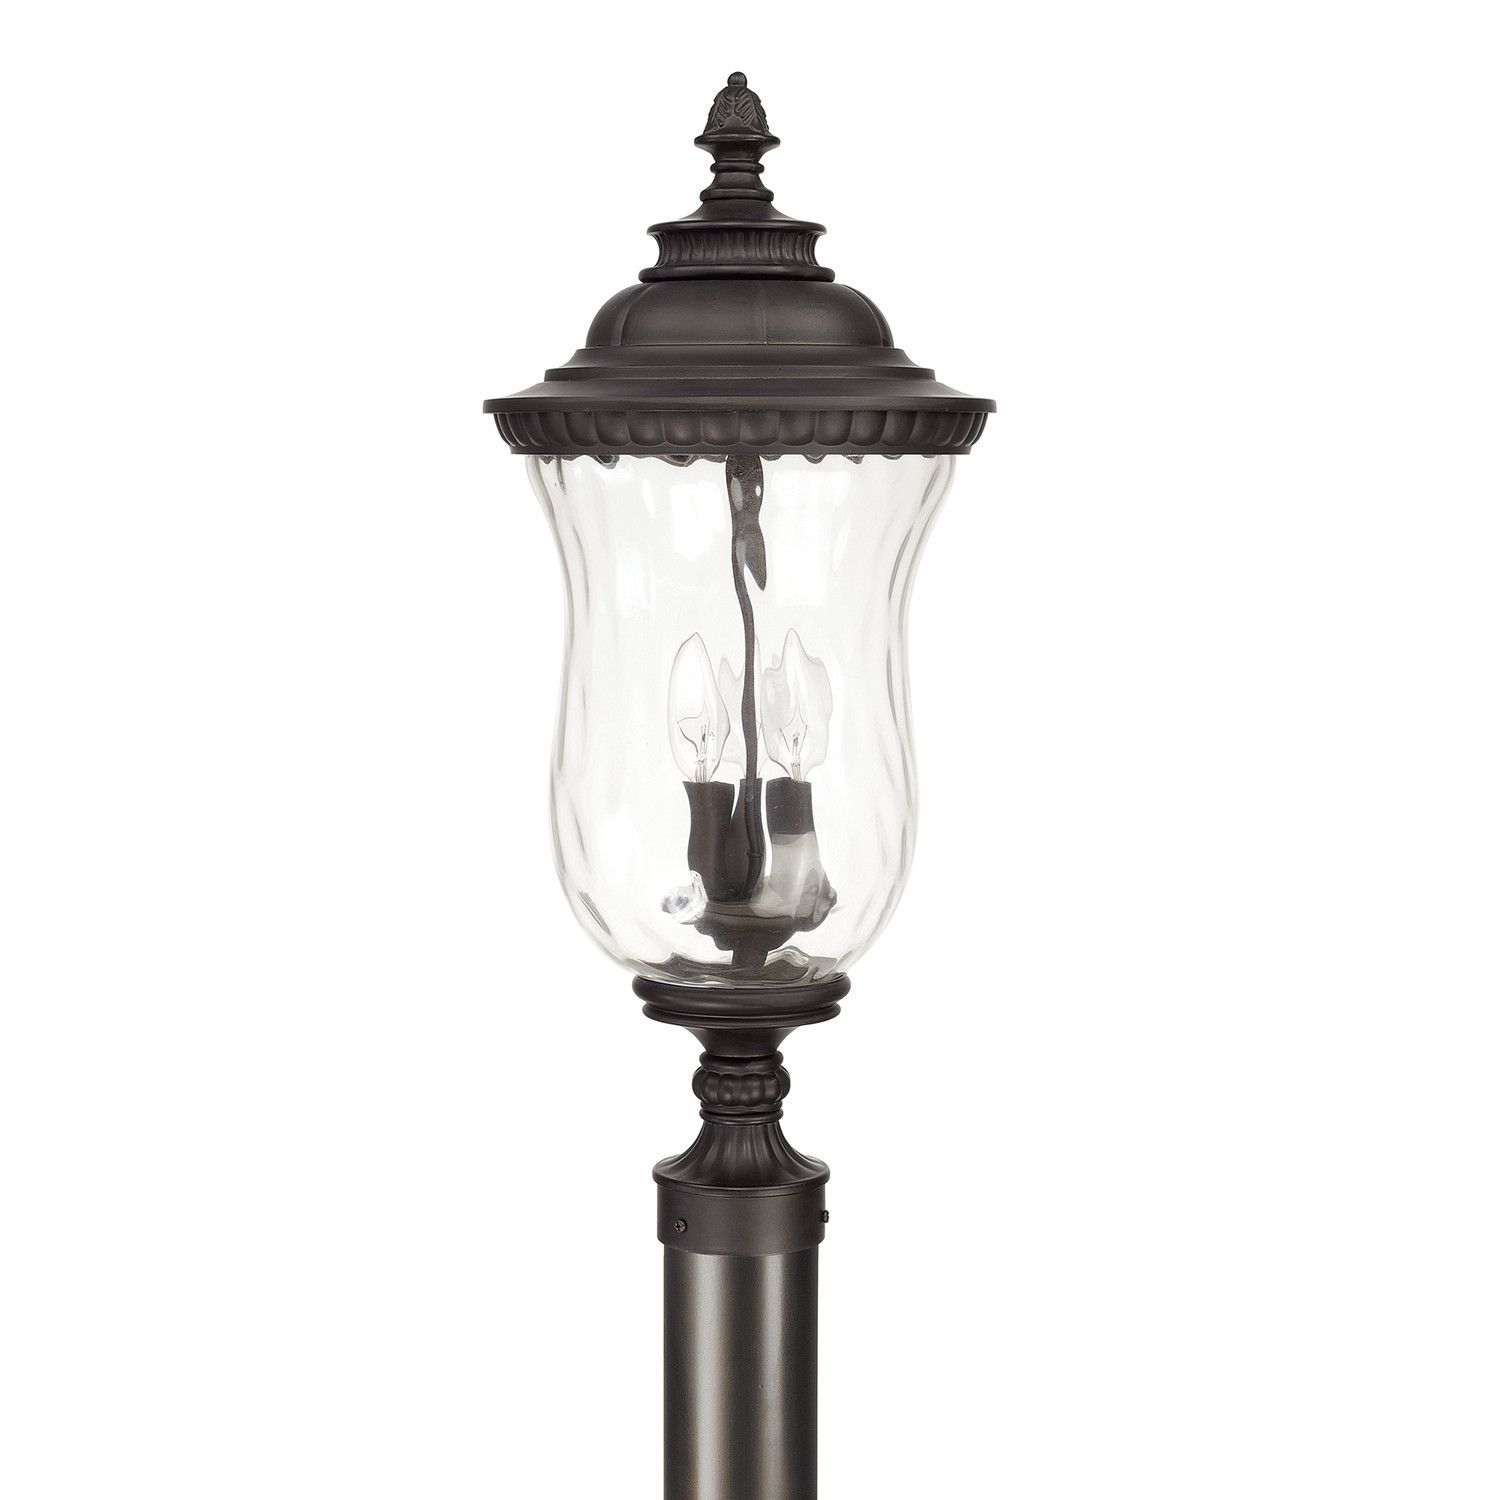 3 lamp post light outdoor lamp outdoor post lantern products pinterest